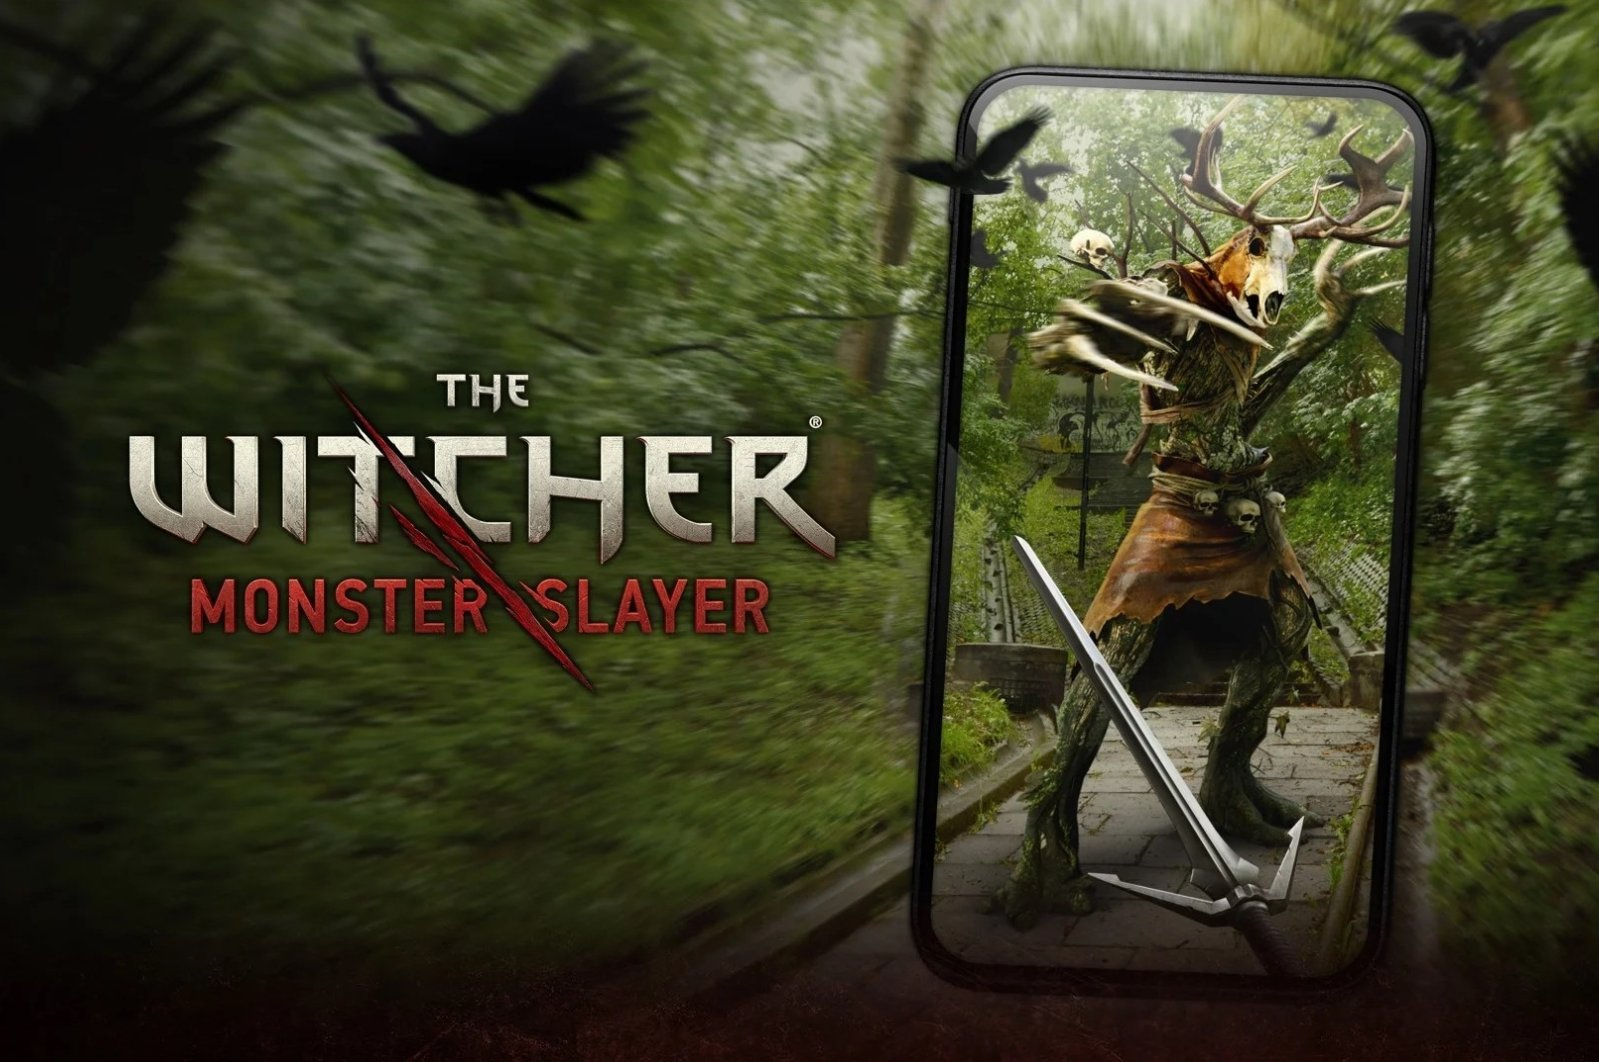 The poster of The Witcher: Monster Slayer. (Photo courtesy of Spokko/CD Projekt)